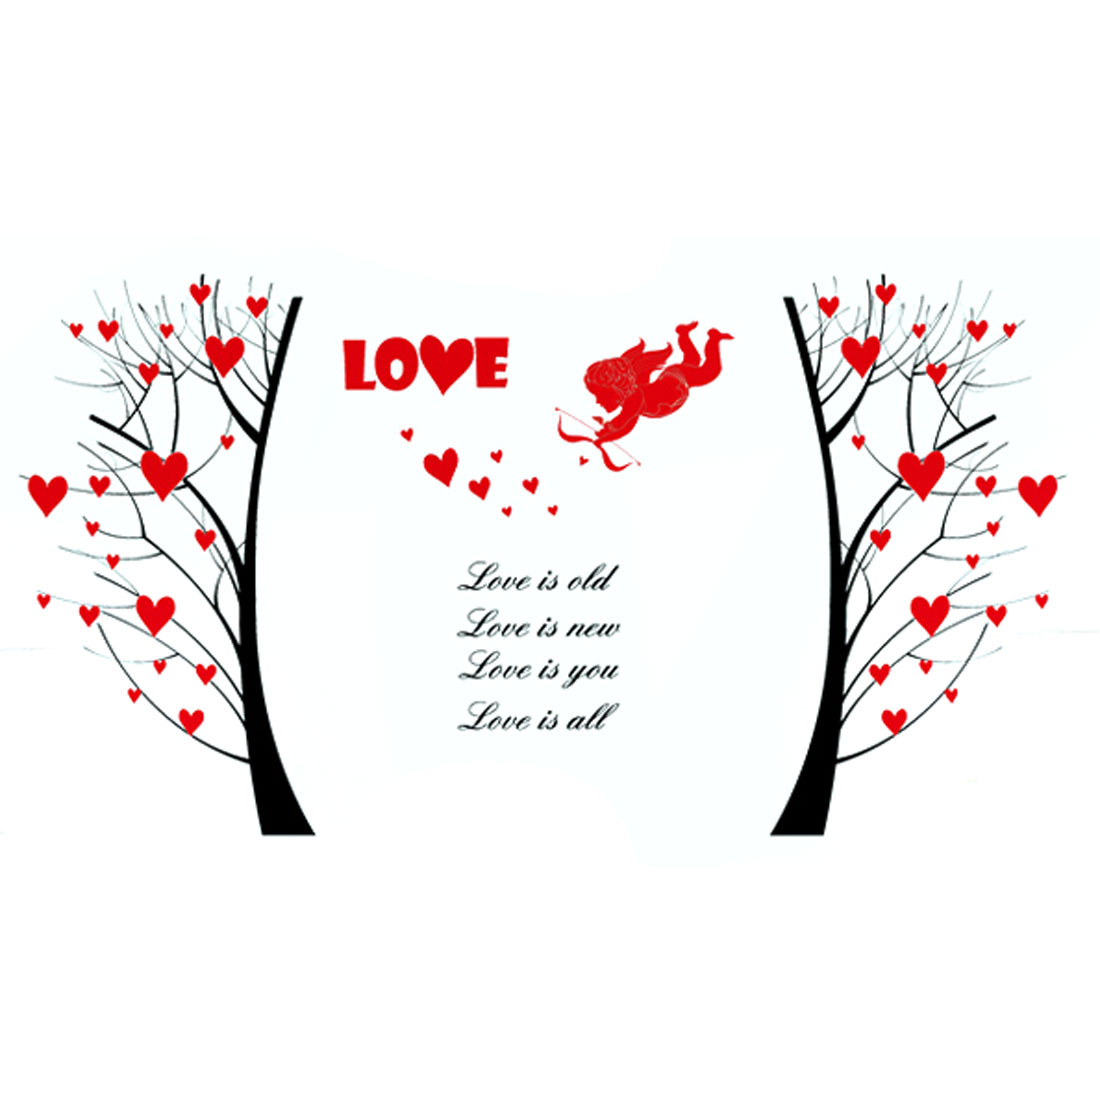 Loving Heart Tree Pattern Self-adhesive Removable Wall Sticker Paper Mural Ornament